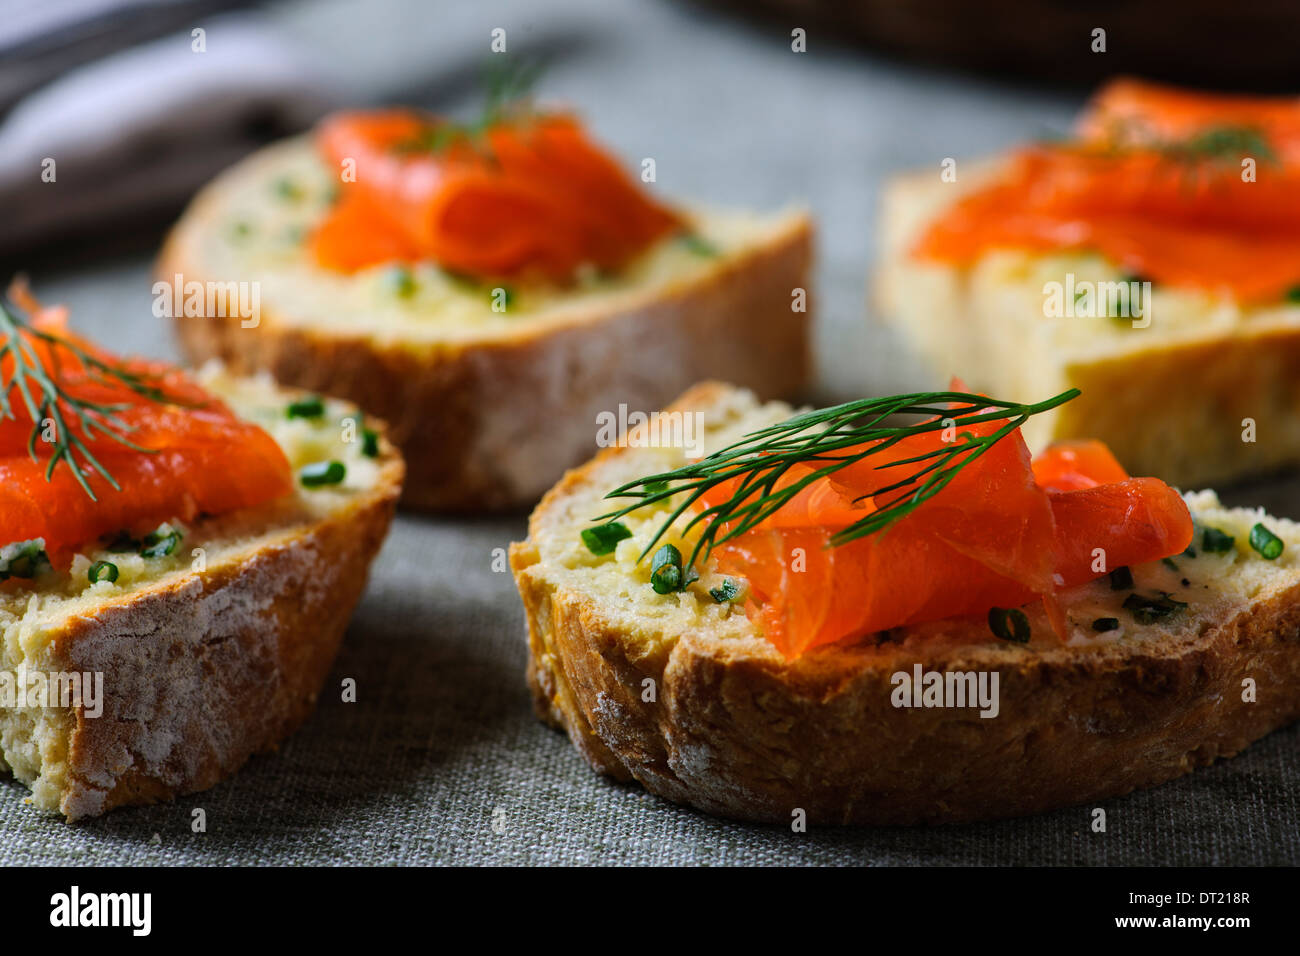 Irish Soda Bread with Smoked Salmon & Chive Butter - Stock Image